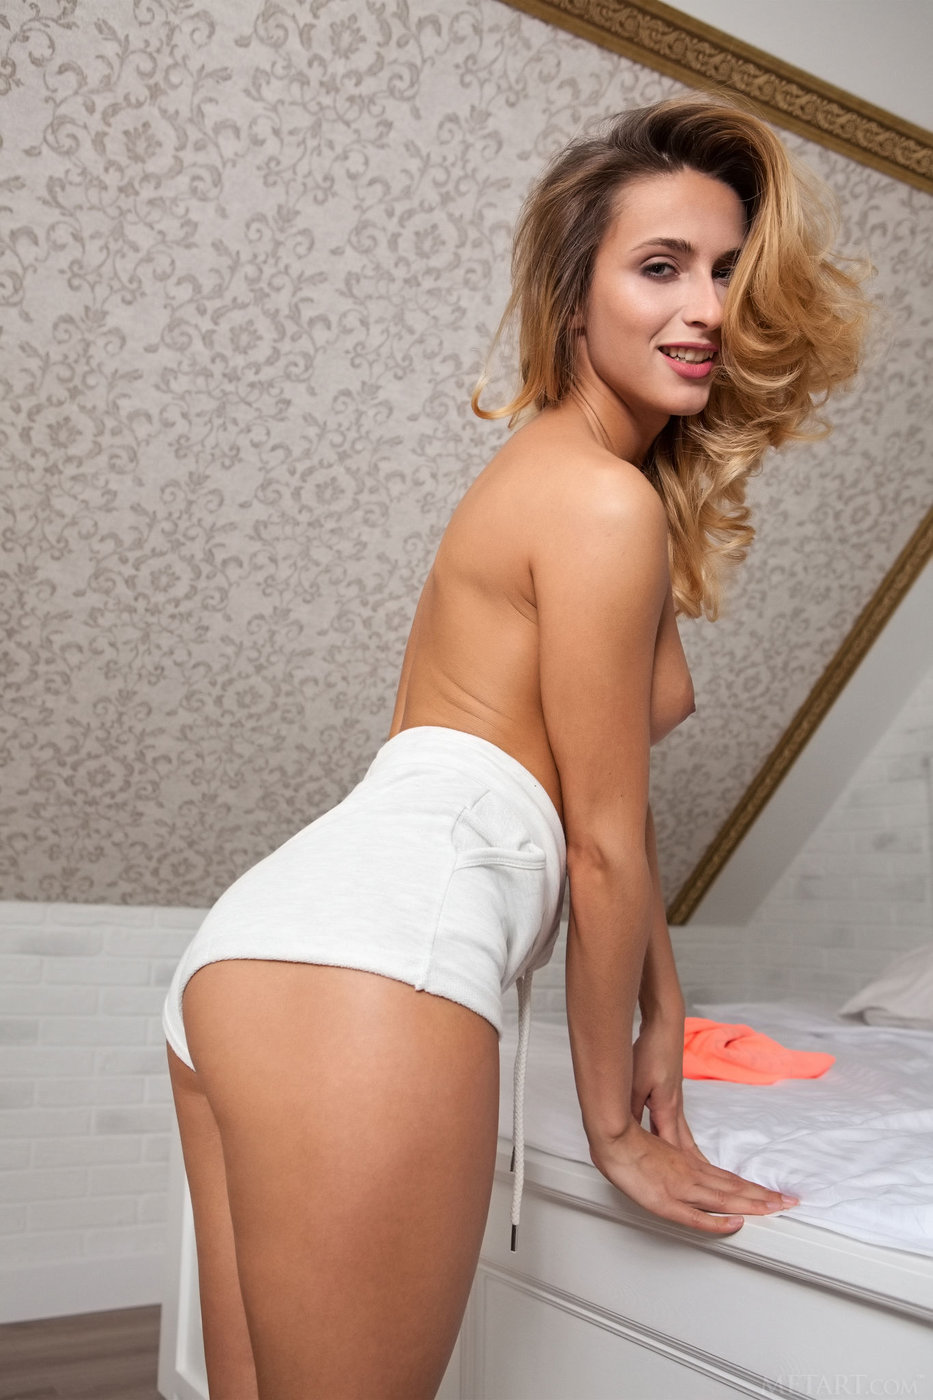 Nude arbin gril pics only pics